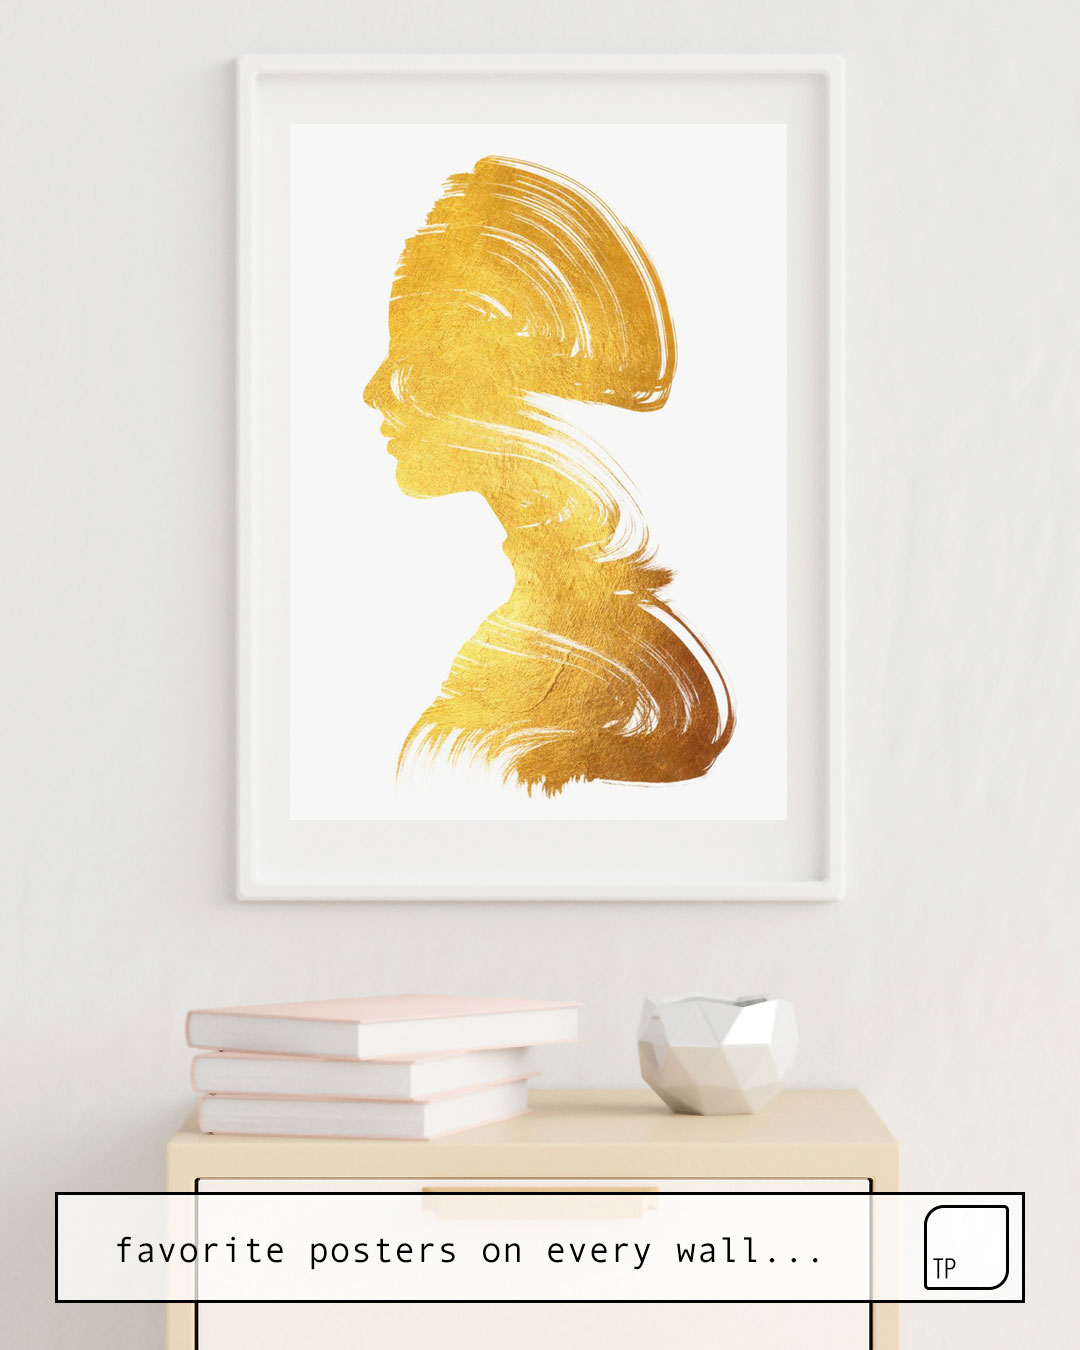 Poster | SEE – GOLD EDITION by Andreas Lie